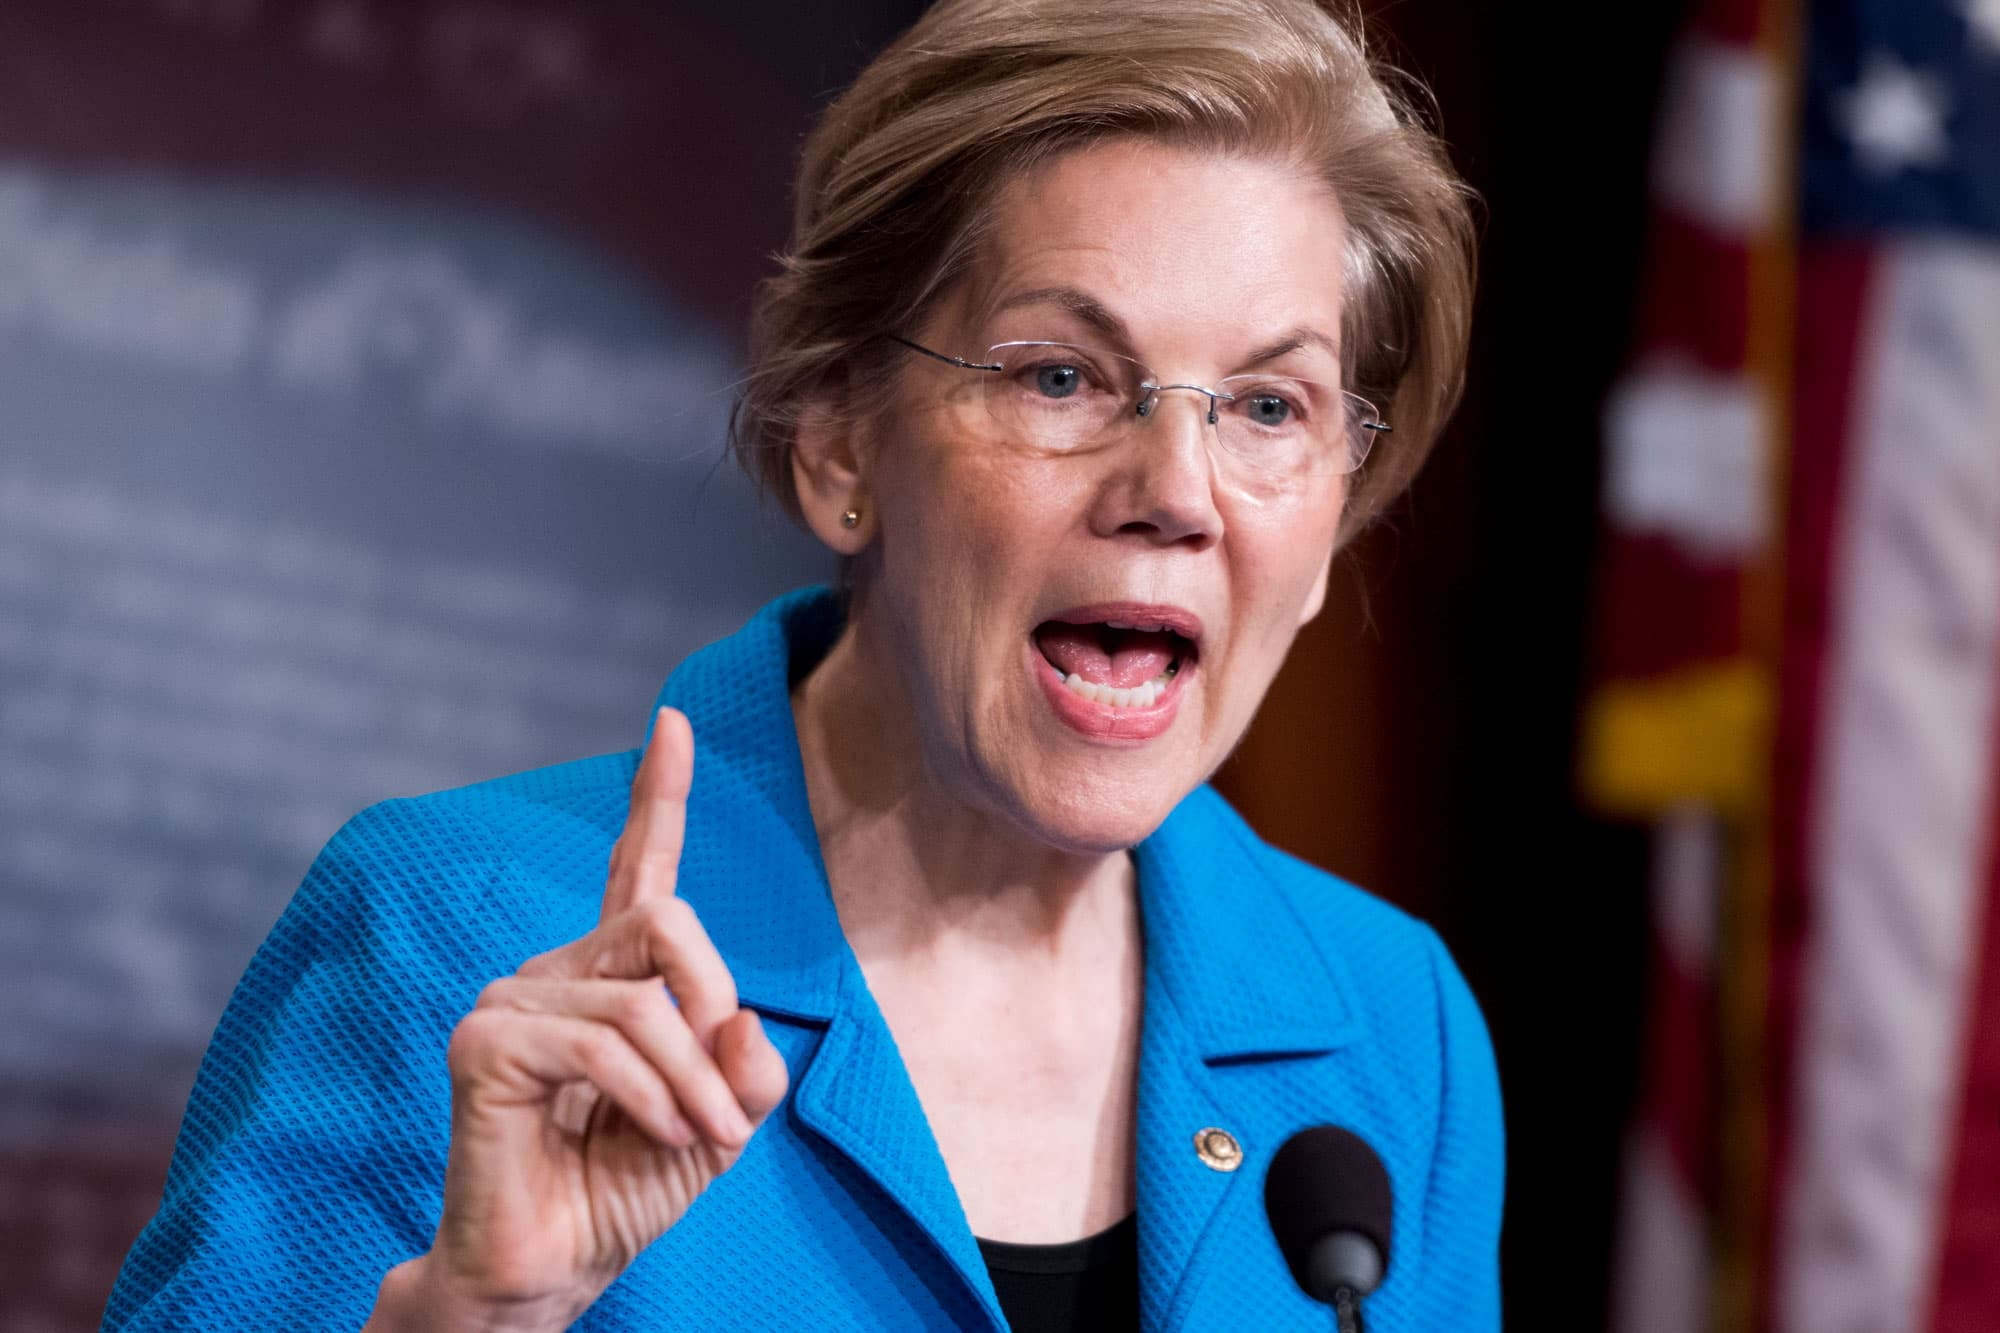 Elizabeth Warren could be 'even tougher than Trump' on China, says analyst